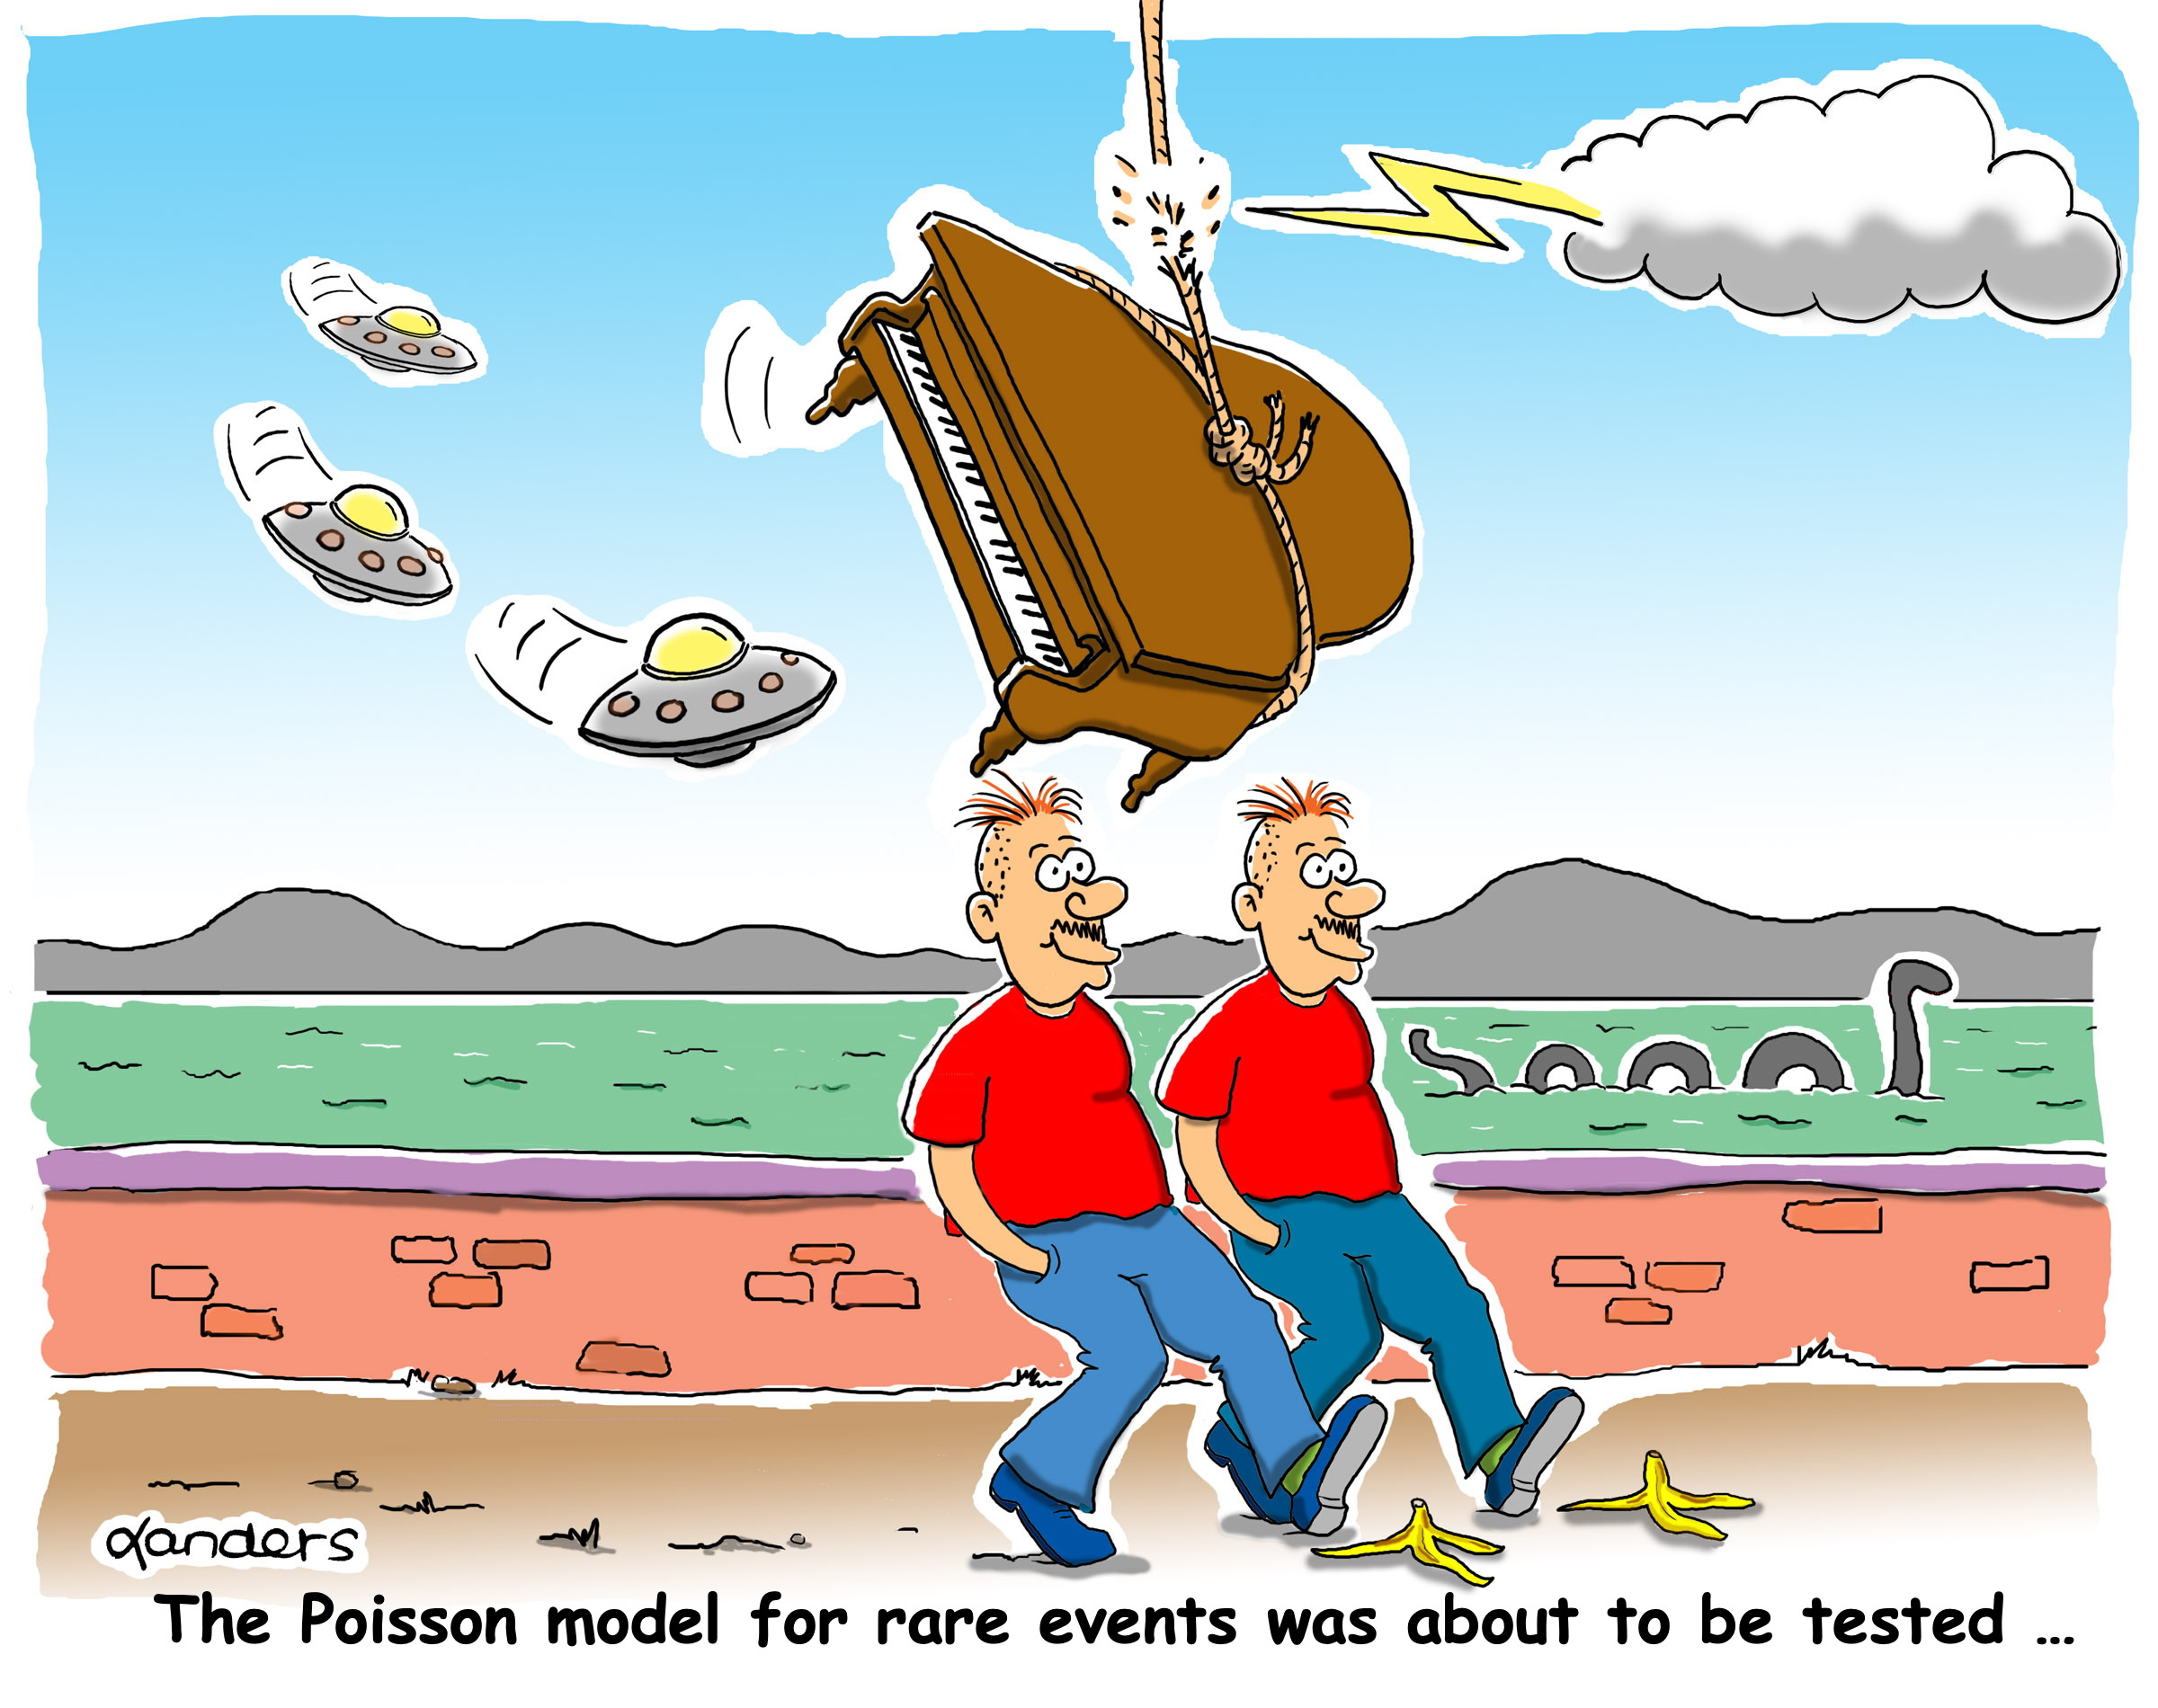 cartoon showing unusual circumstances and punch line about Poisson model